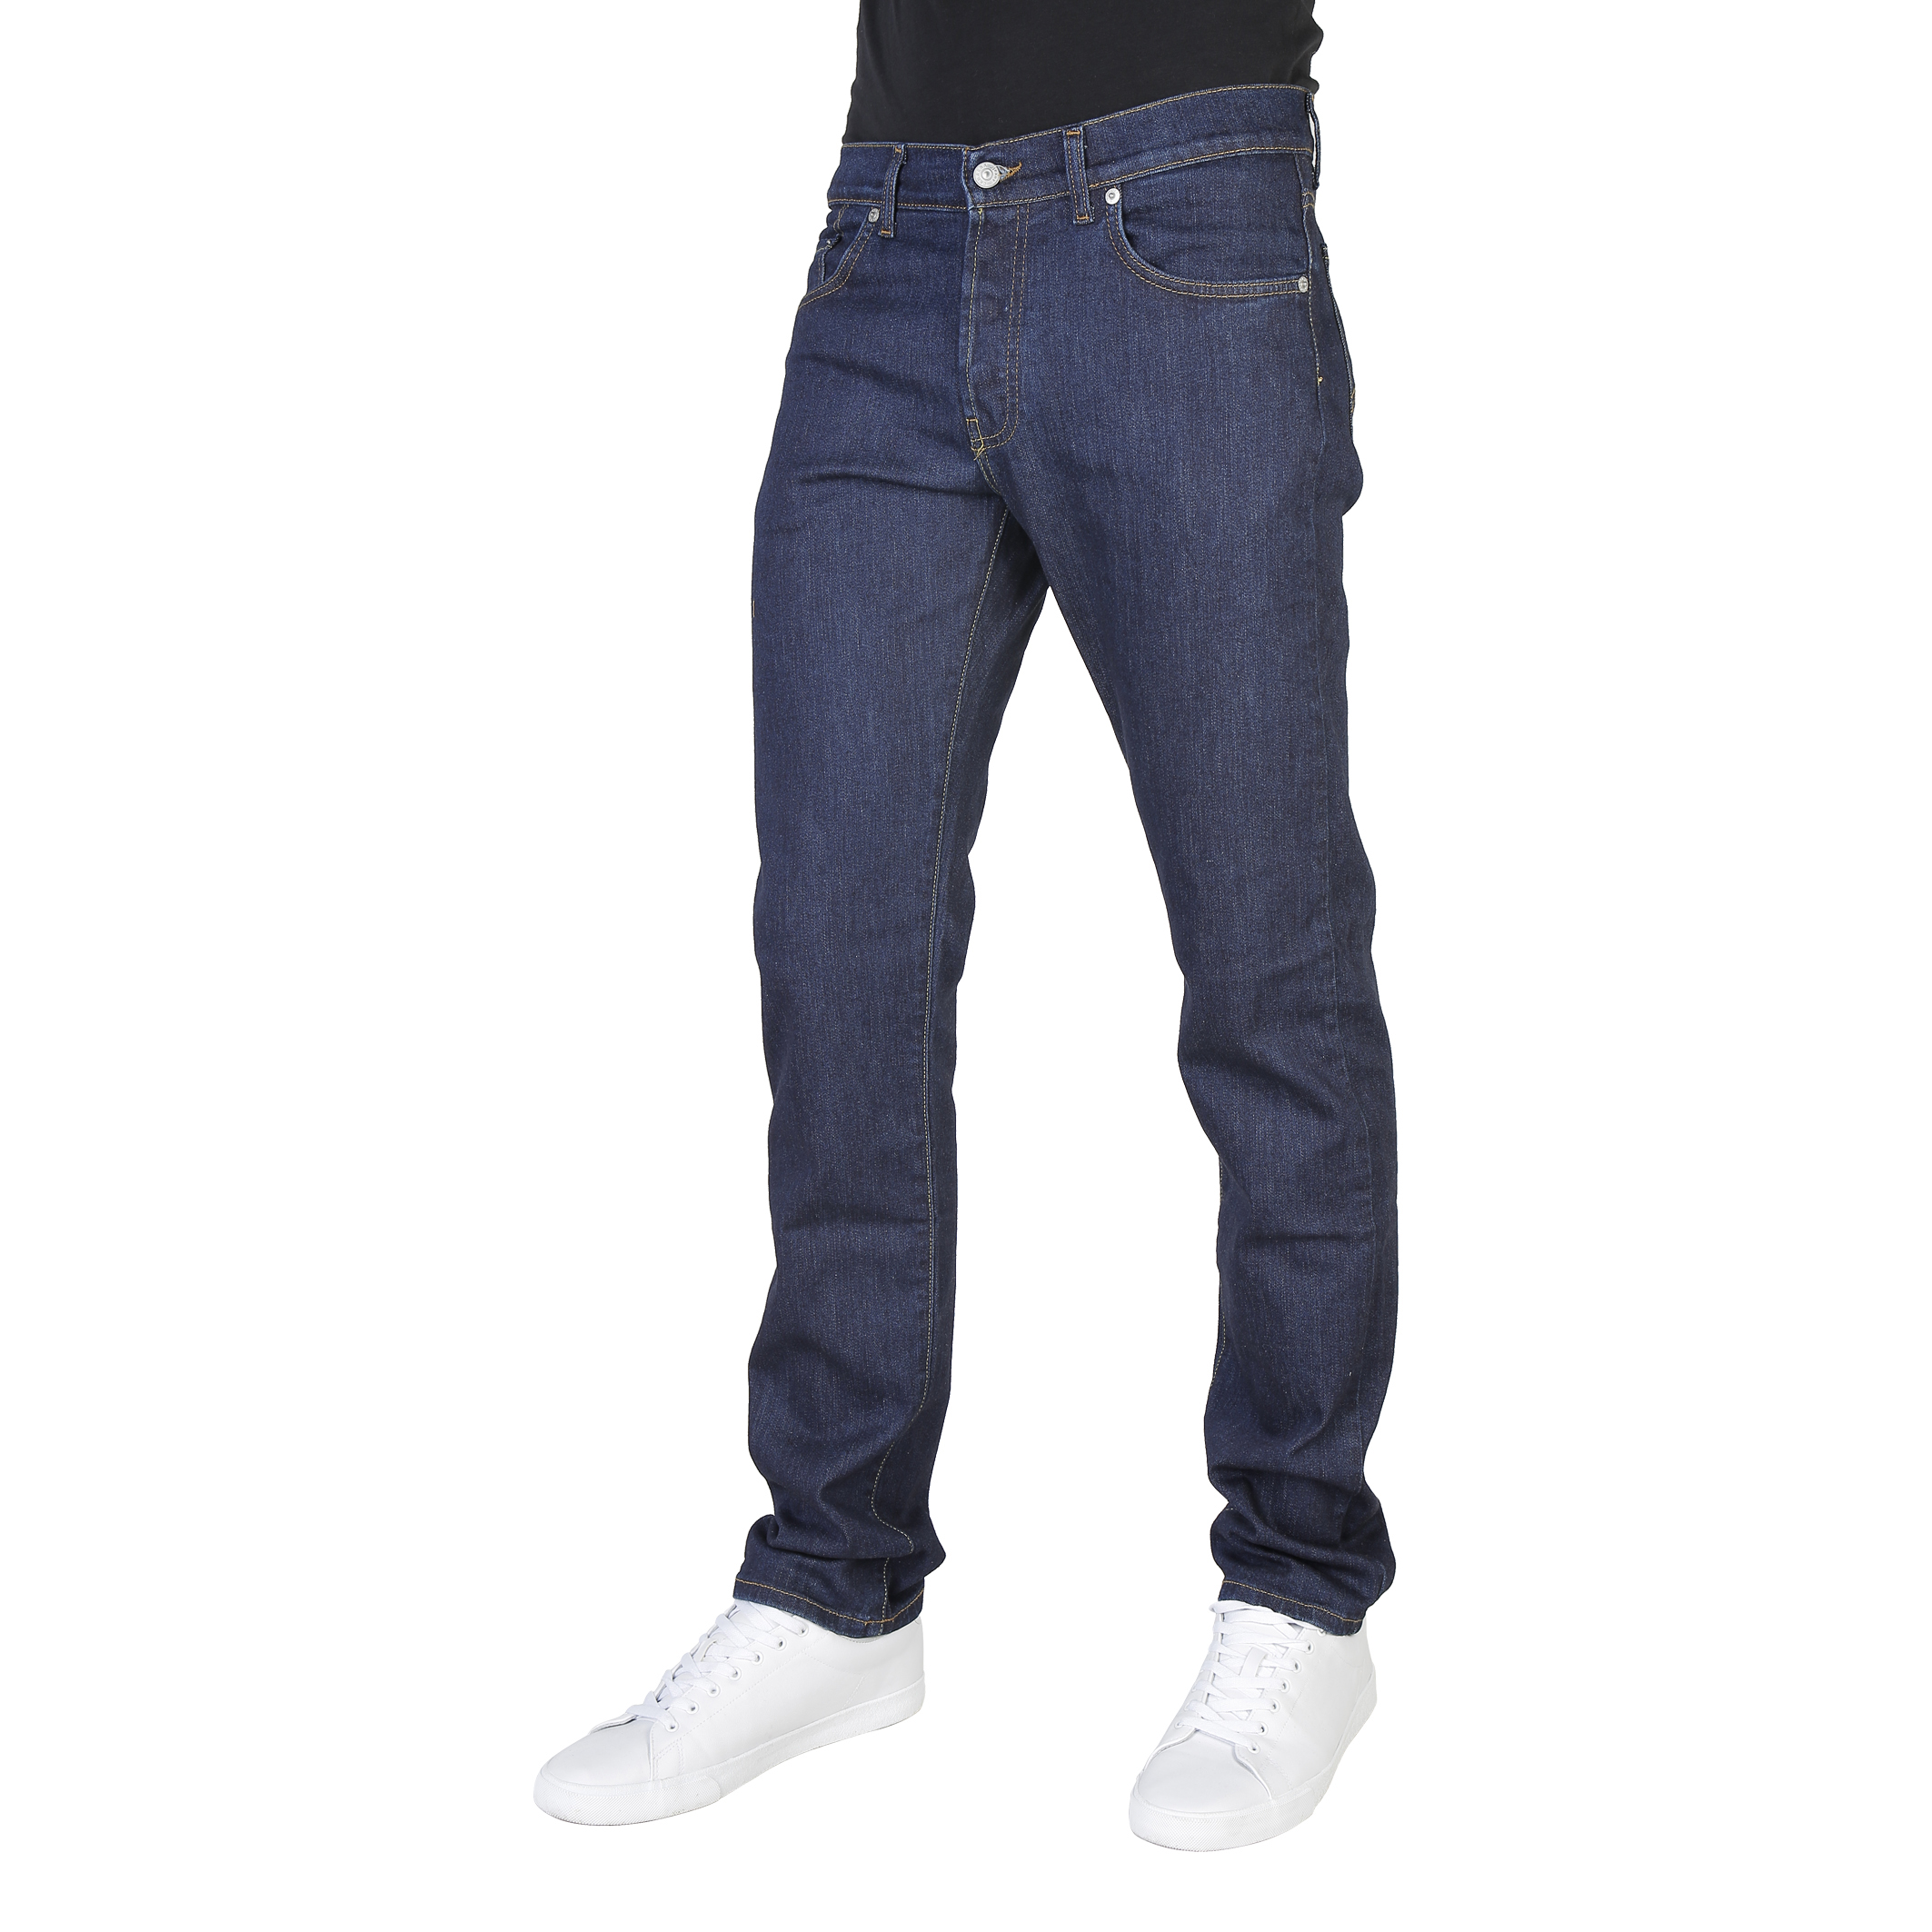 Jeans  Carrera Jeans 000710_0970A blue